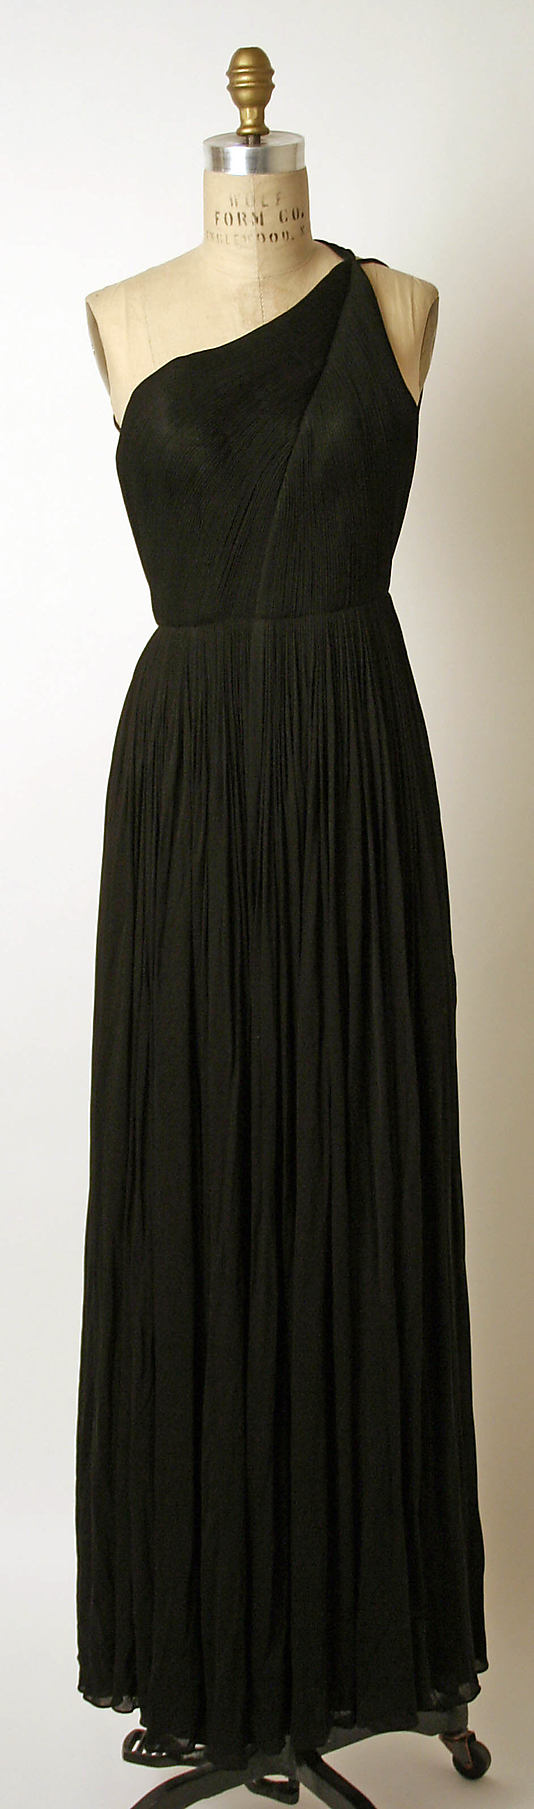 Madame Grès (Alix Barton), 1970    Let's pretend I can afford this... I would love to find a place to wear it.